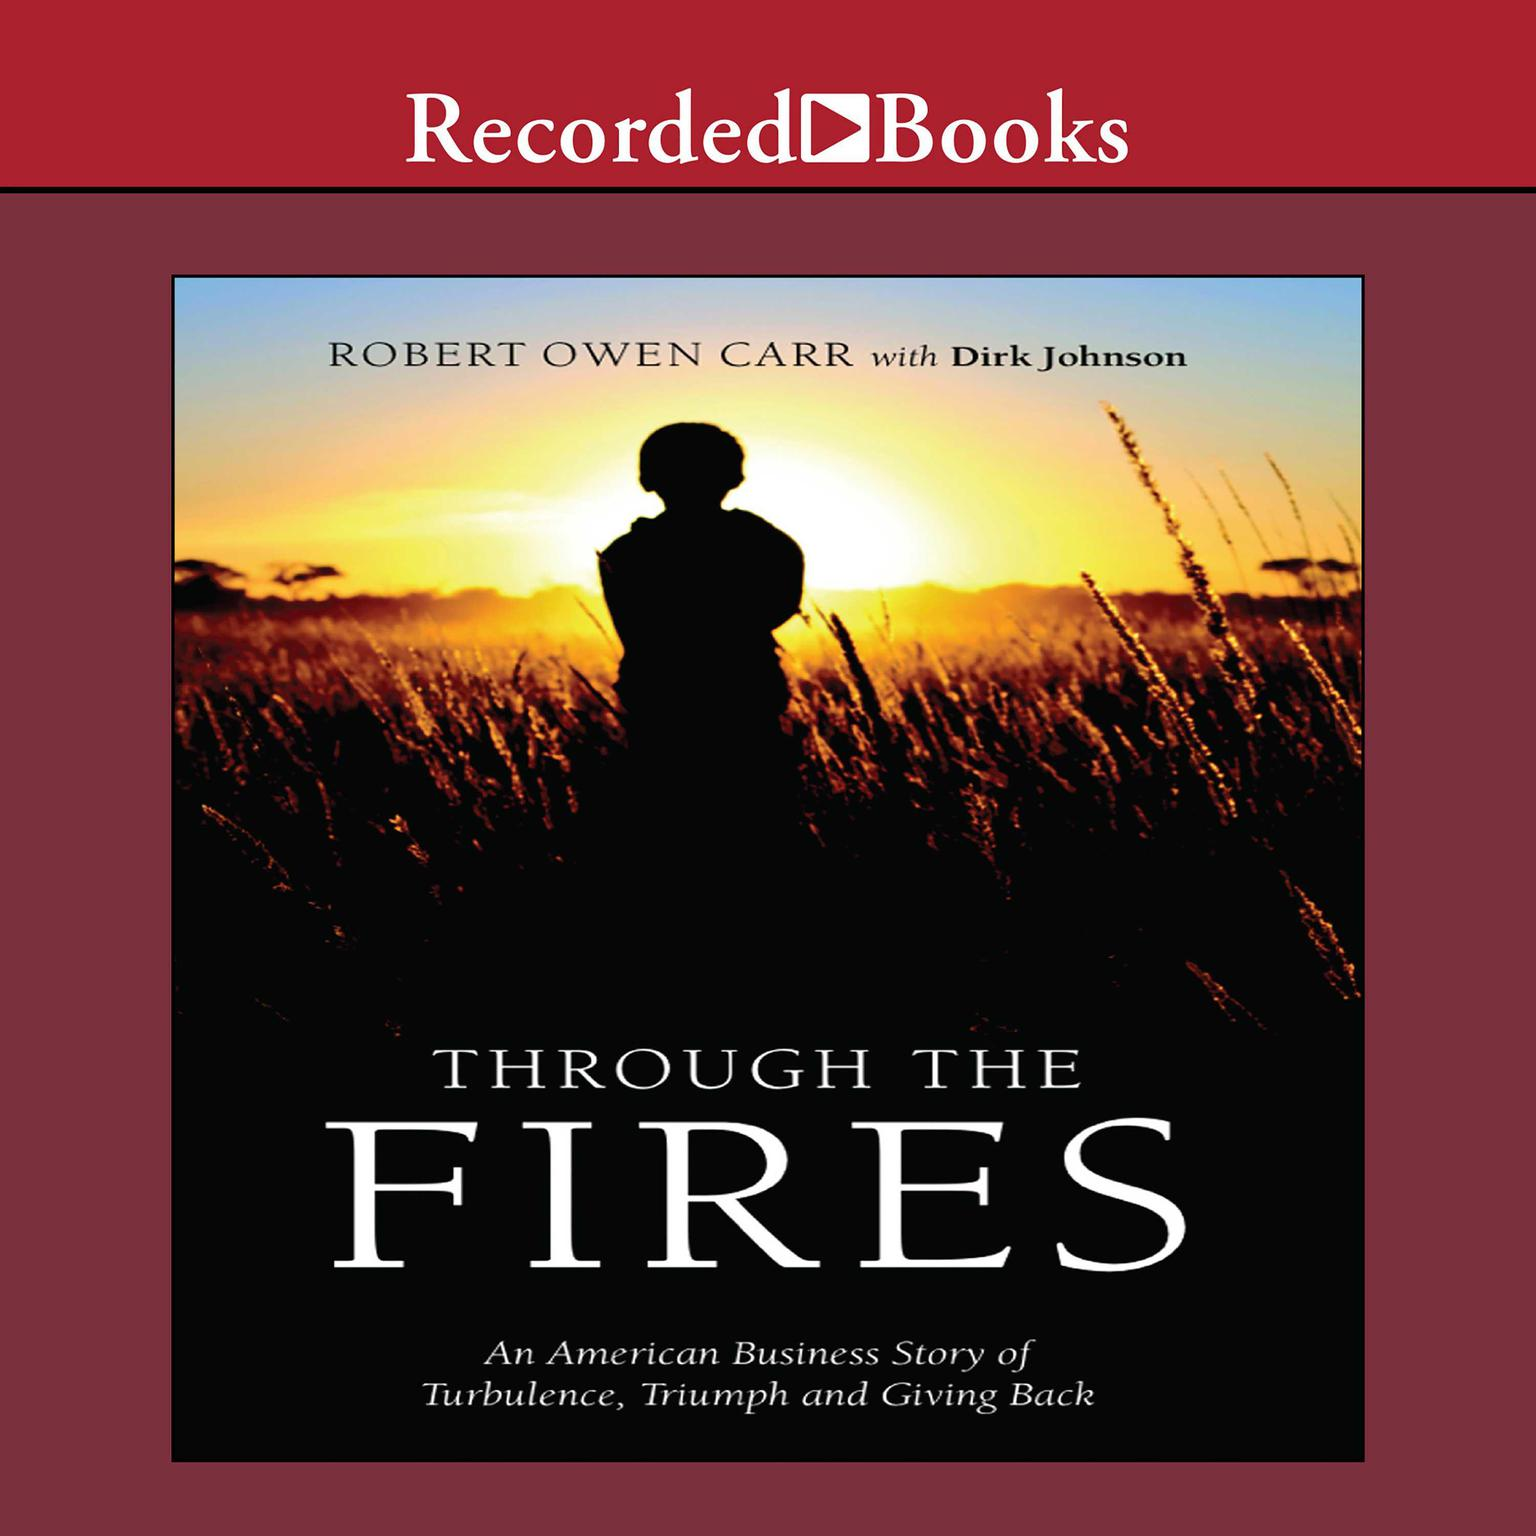 Through the Fires: An American Business Story of Turbulence, Triumph and Giving Back Audiobook, by Robert Owen Carr